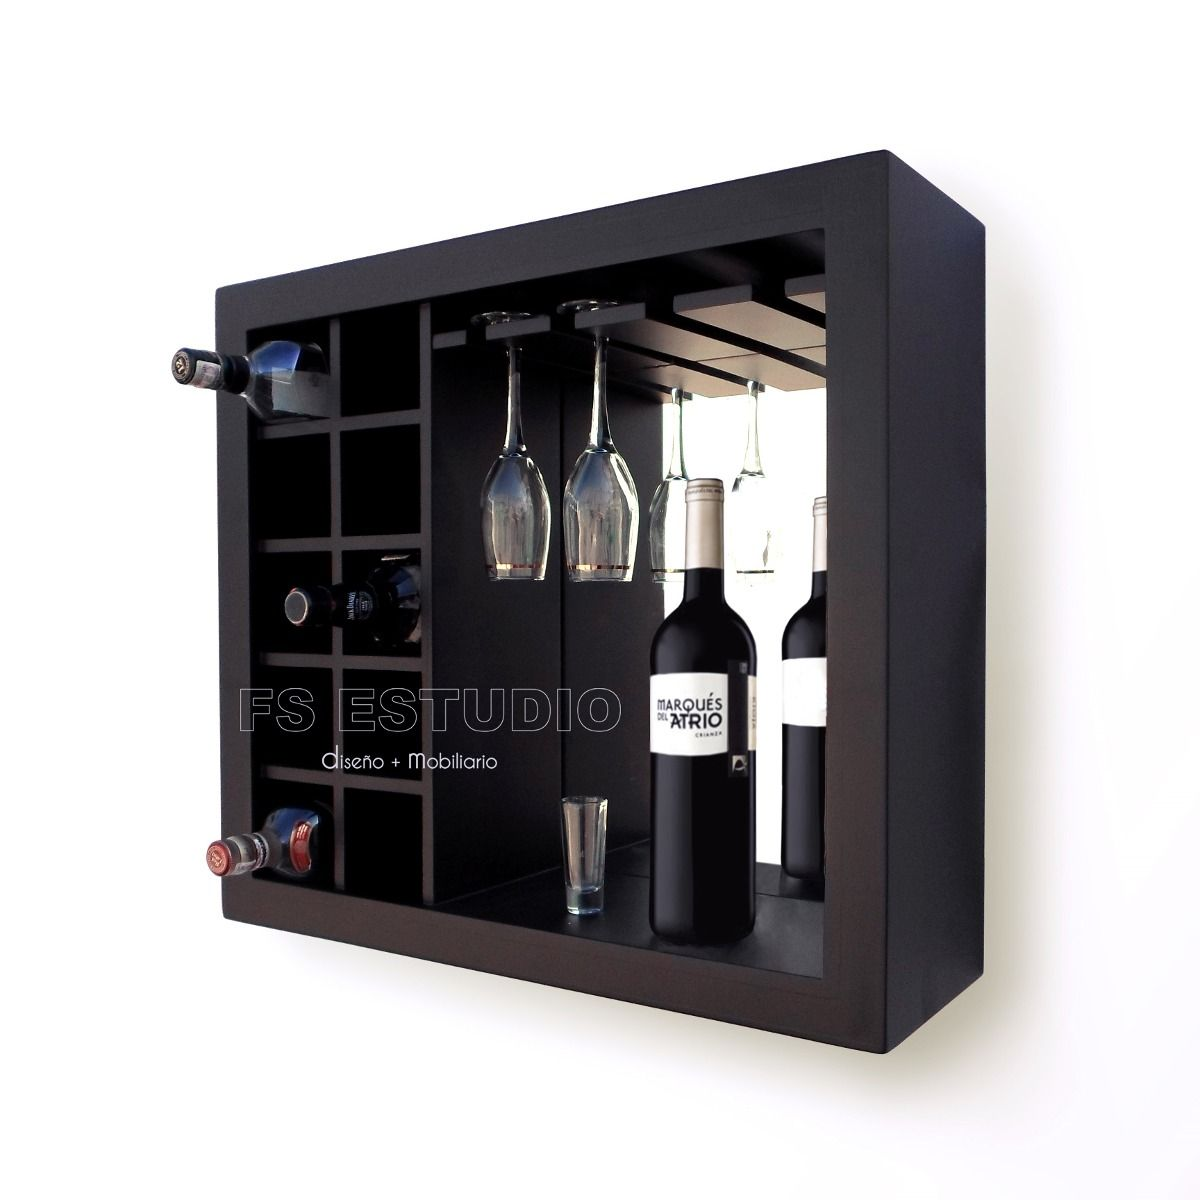 Muebles Licoreras Pared - Cava Cantina Mueble Contemporane Para Vinos Copas De Pared [mjhdah]https://http2.mlstatic.com/mueble-bar-licorera-de-pared-con-paneles-de-vidrio-D_NQ_NP_803136-MLV26718495720_012018-F.jpg